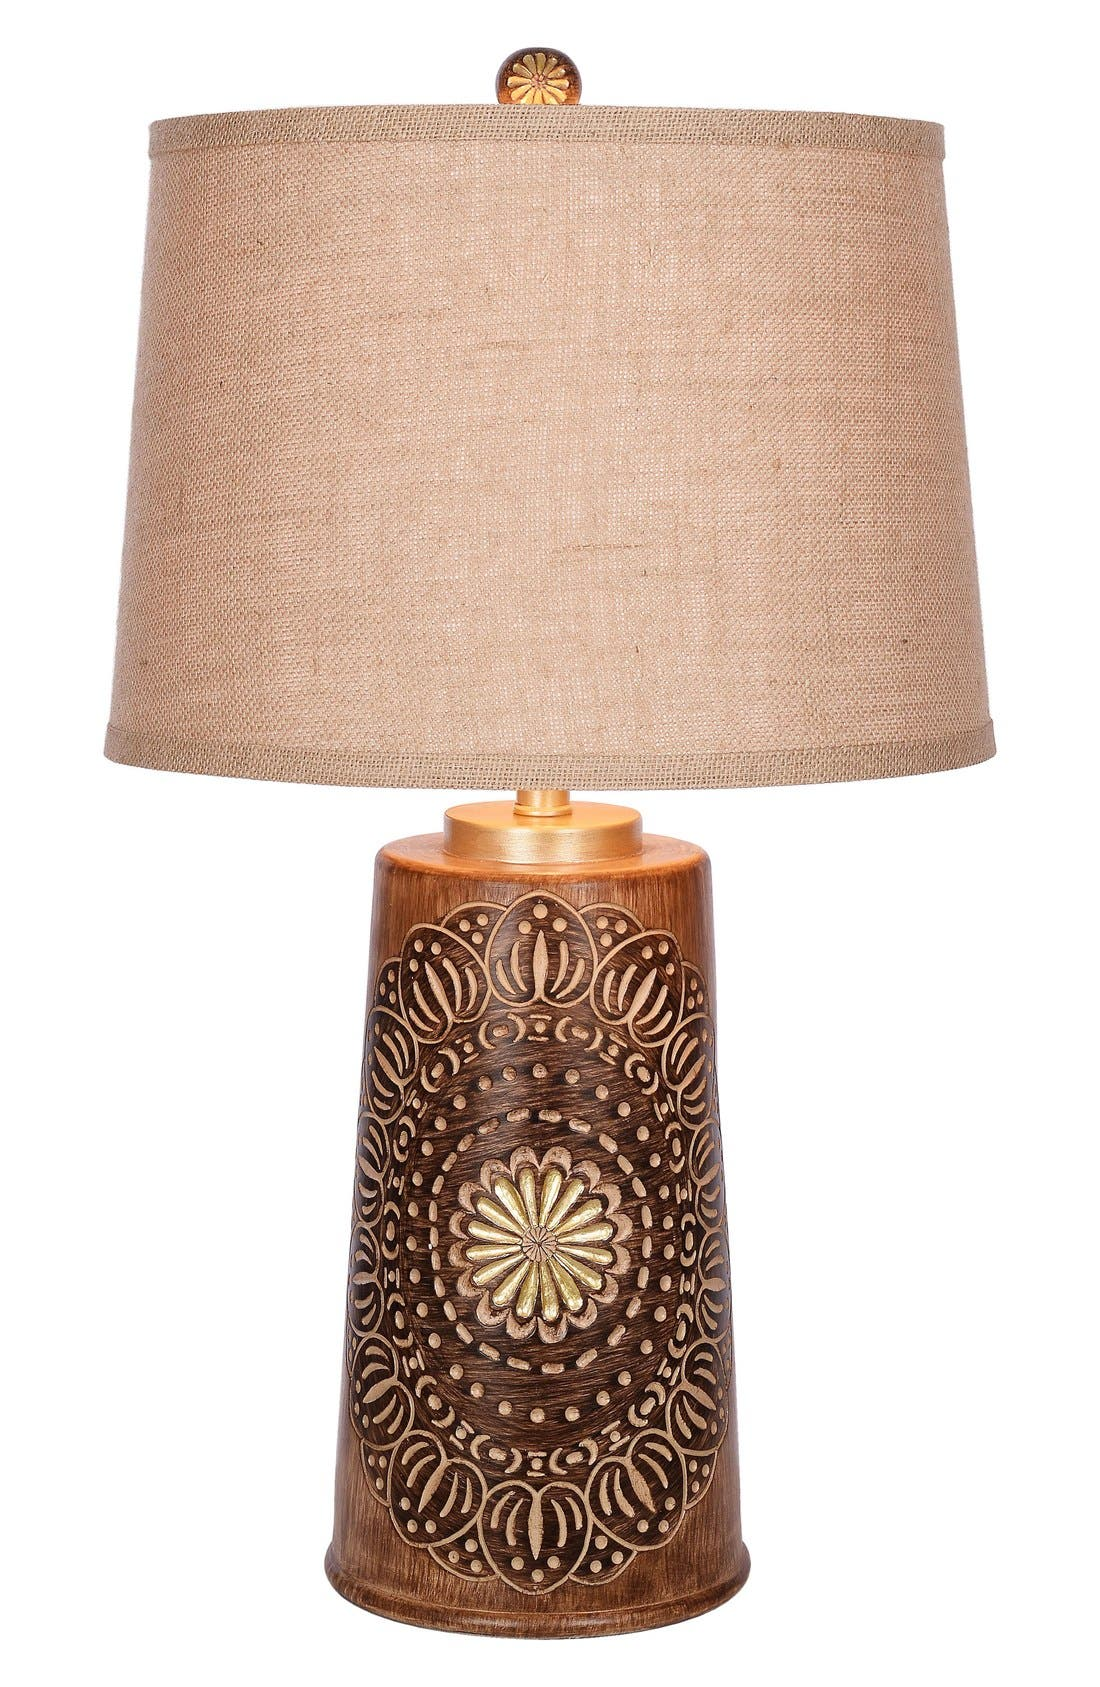 JAlexander Sadie Faux Wood Table Lamp